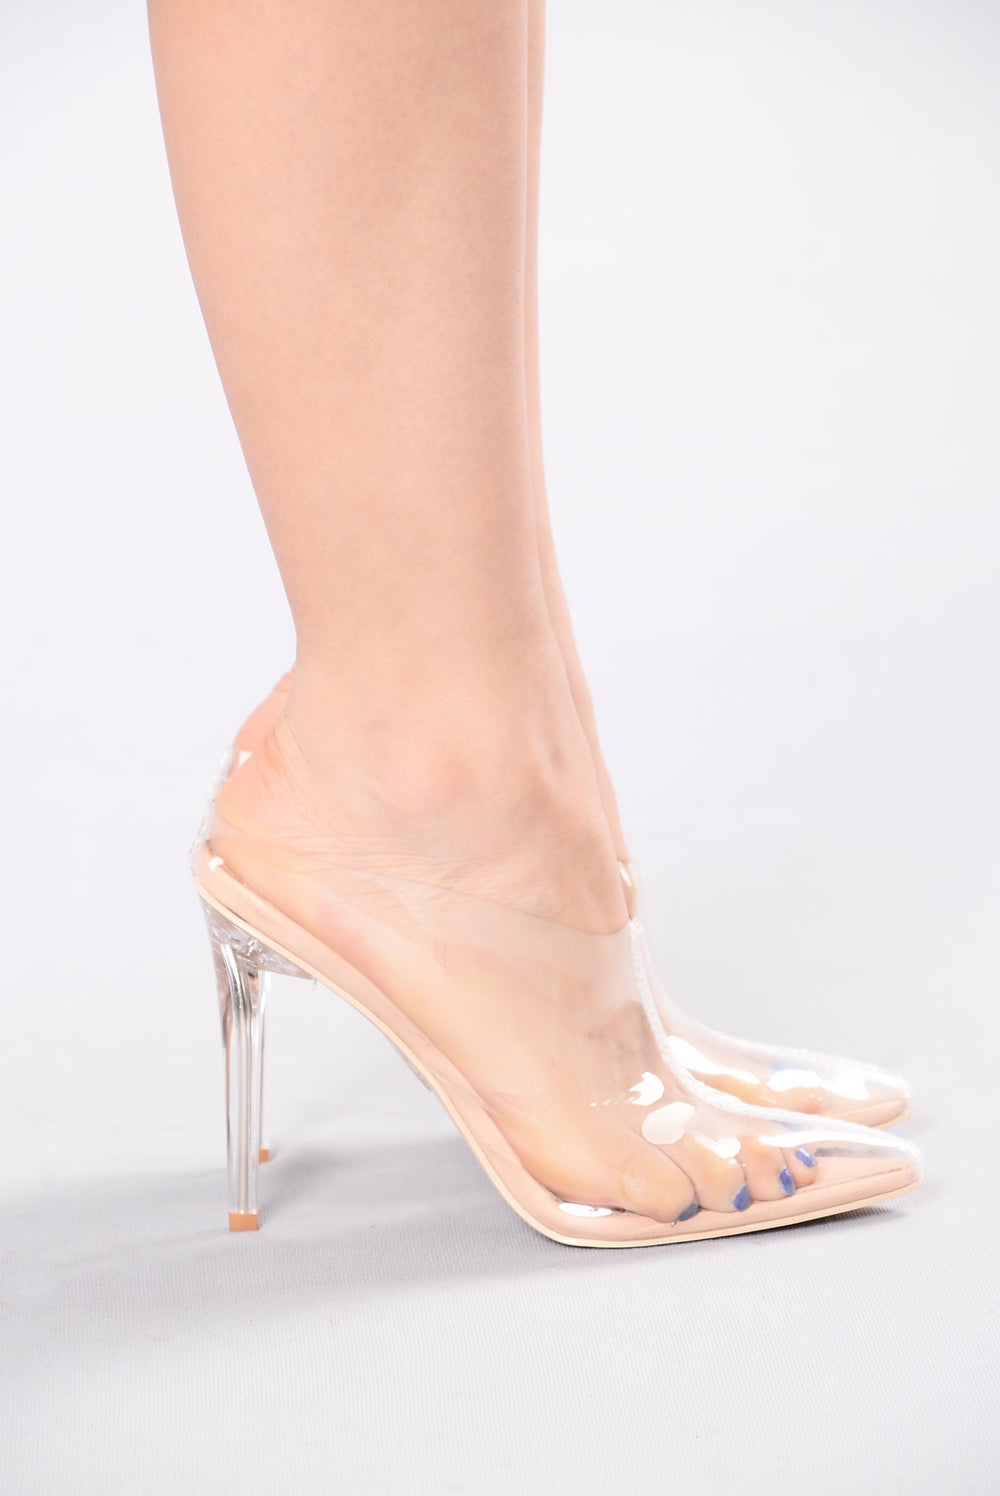 Clear Heel Shoes Uk